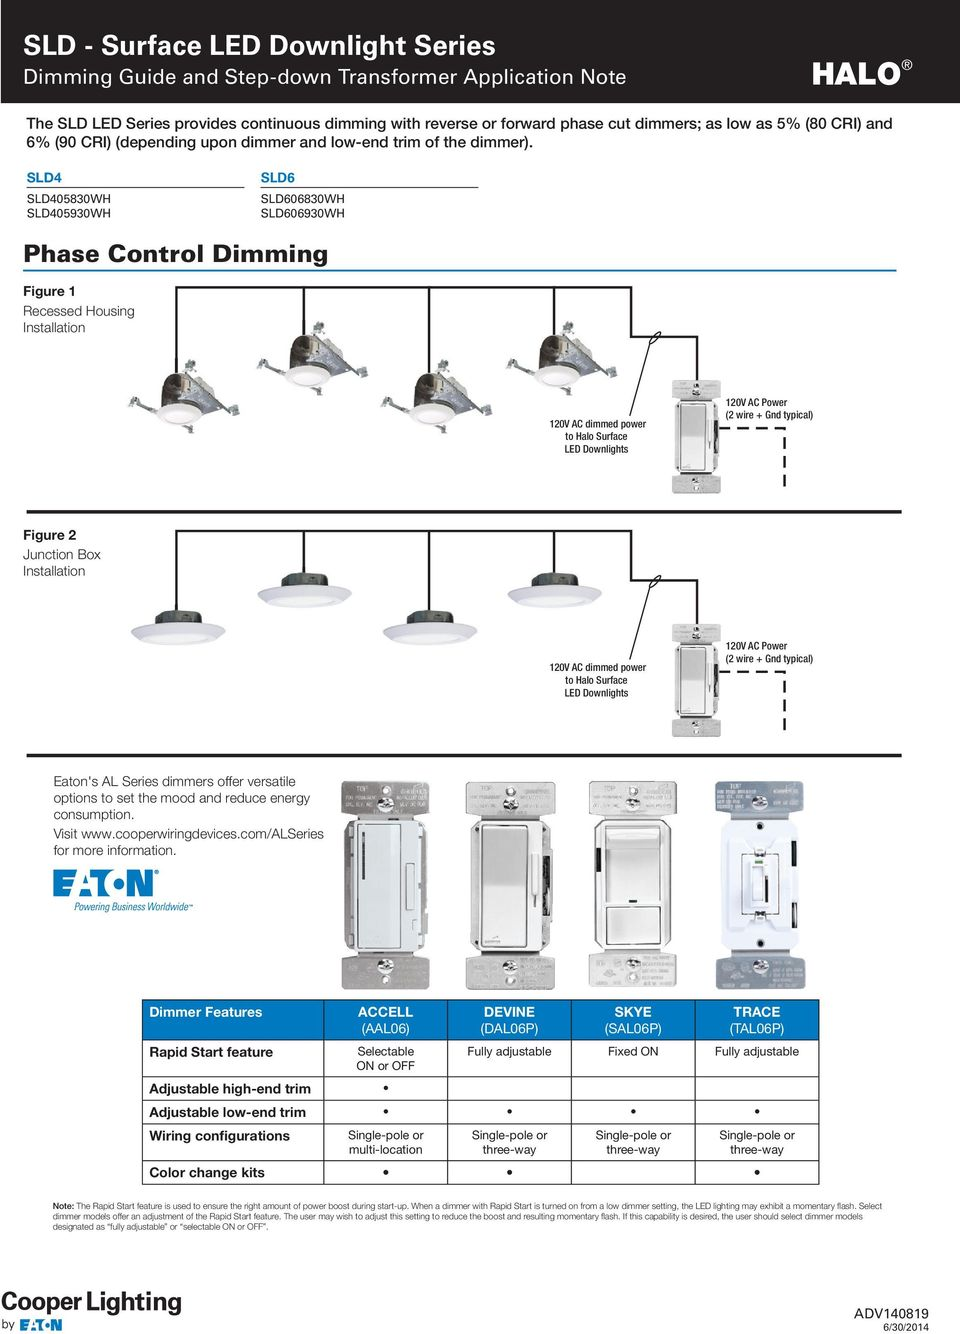 Halo Sld Surface Led Downlight Series Dimming Guide And Step Down 0 10v Wiring Diagram Sld4 Sld405830wh Sld405930wh Sld6 Sld606830wh Sld606930wh Phase Control Figure 1 Recessed Housing Installation 120v Ac